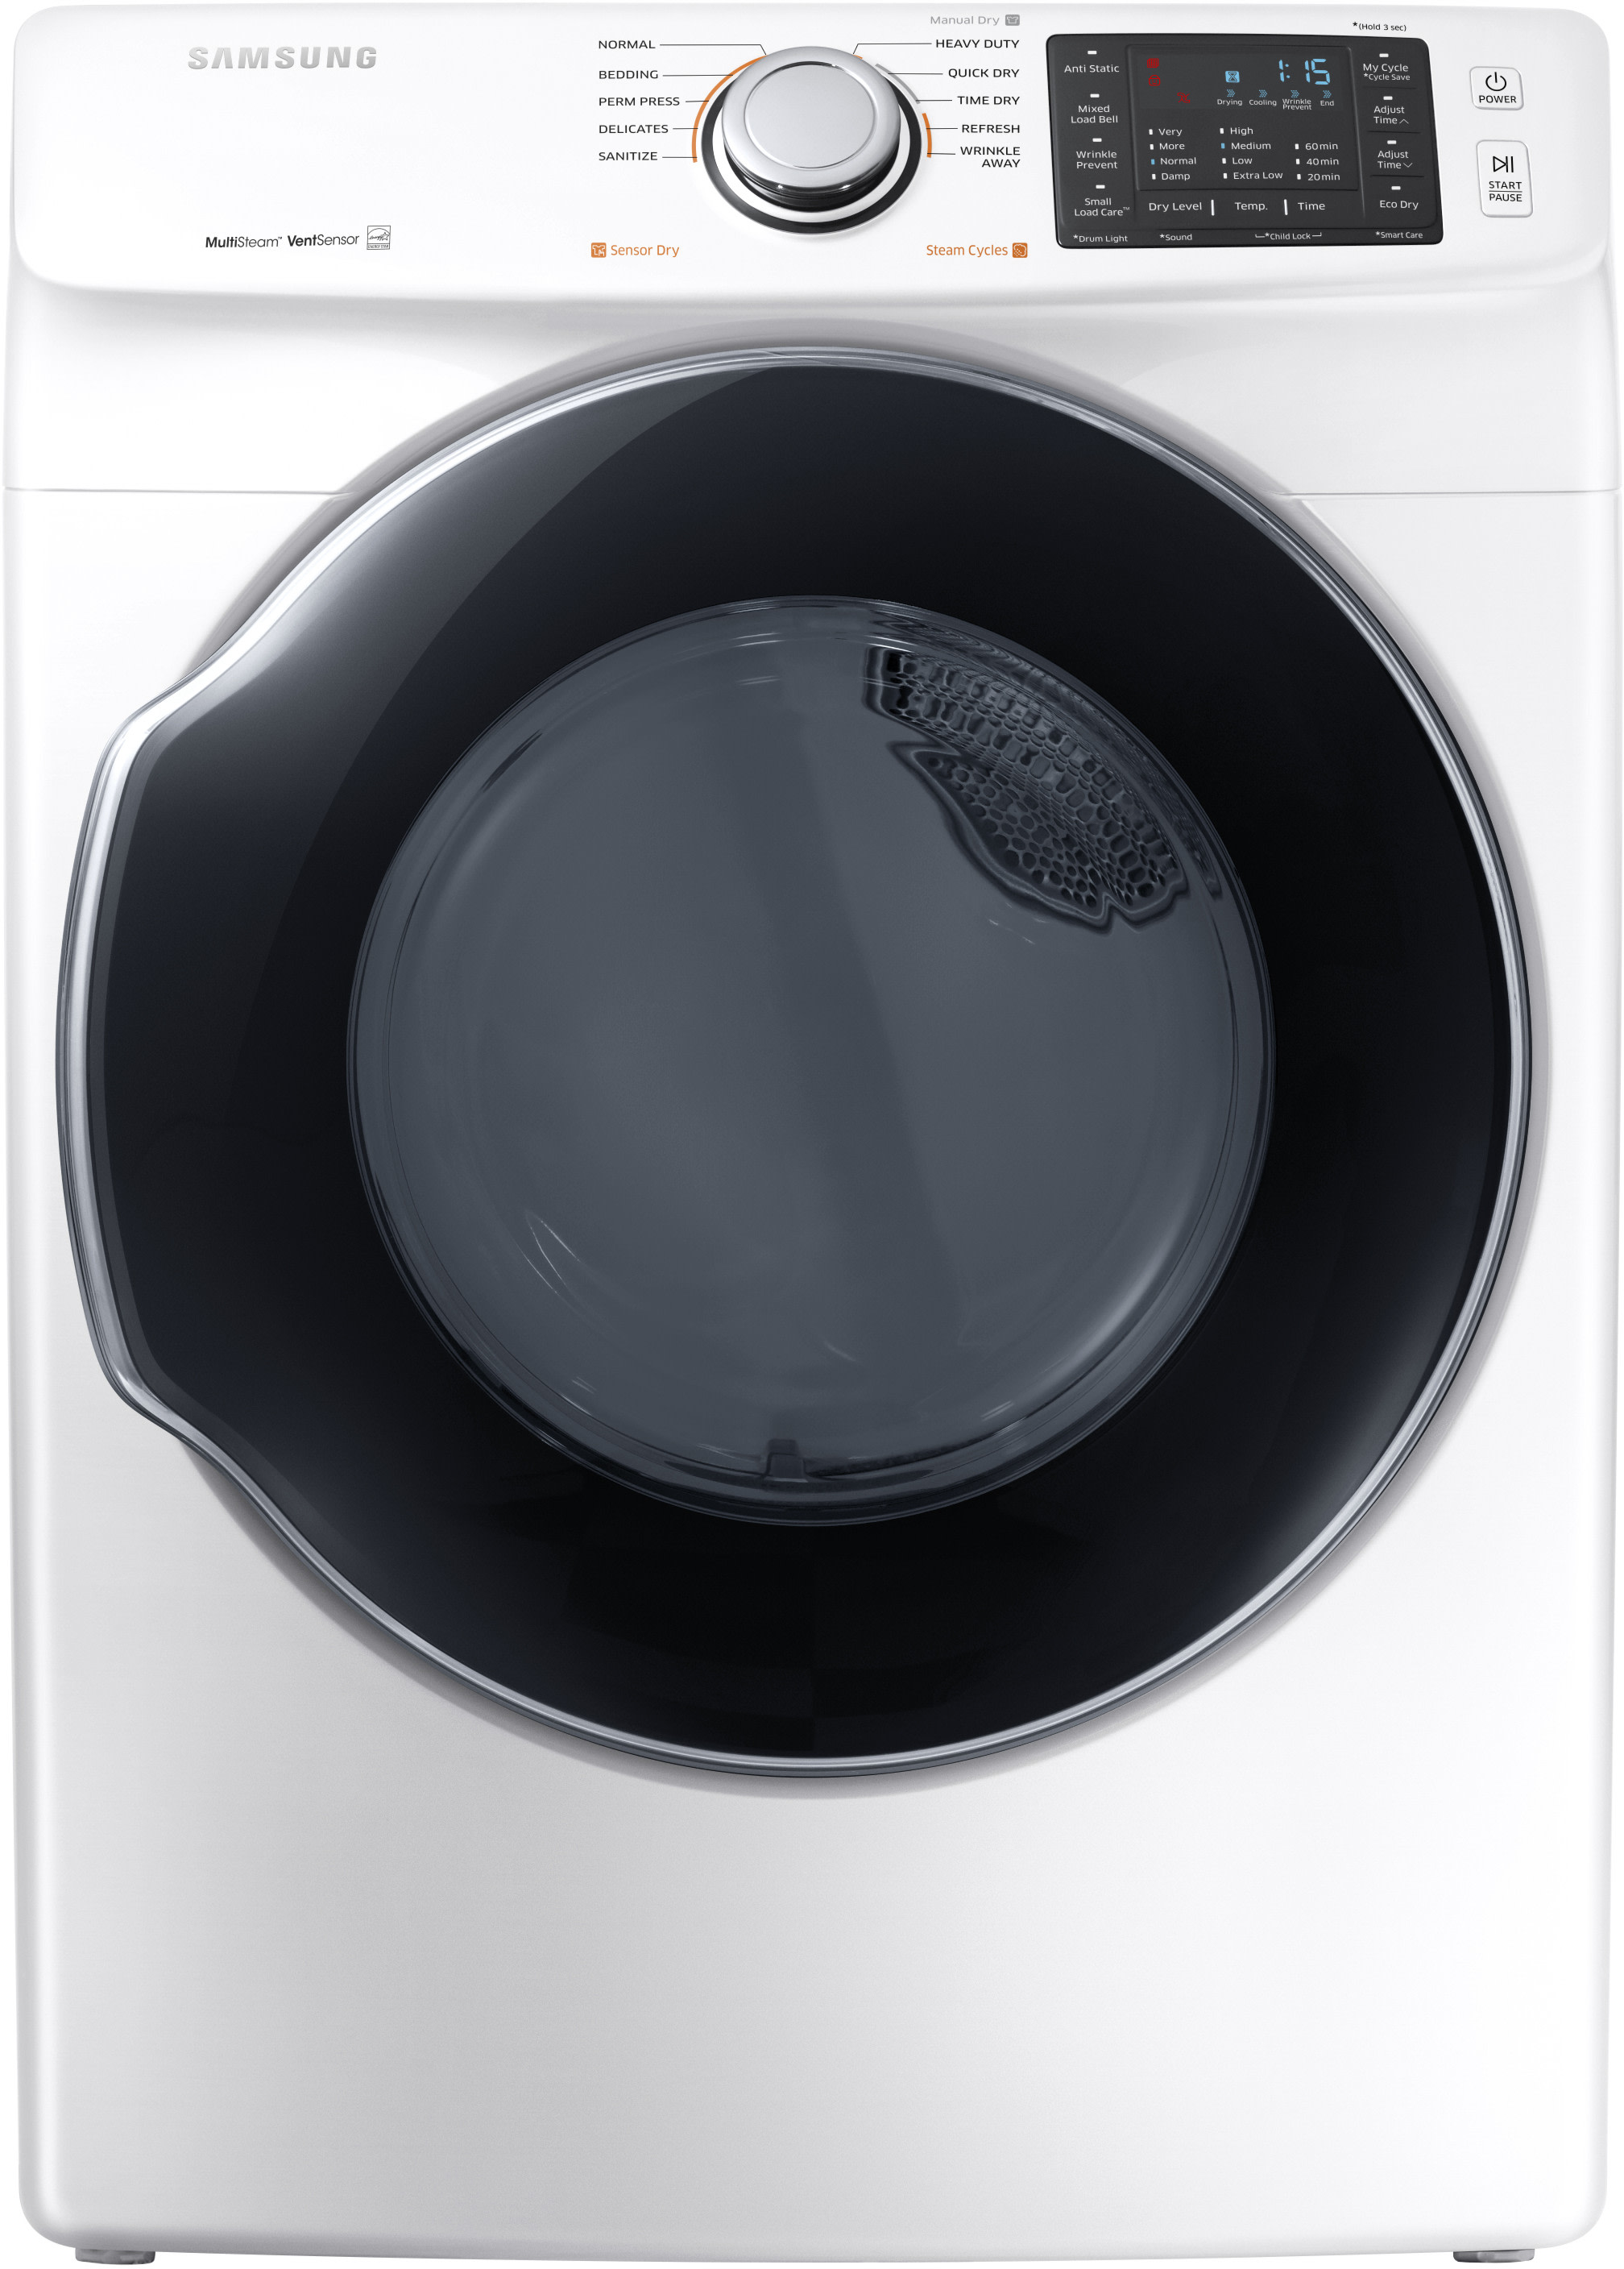 samsung wf45m5500aw 27 inch front load washer with steam self clean cycle smart care 10 wash. Black Bedroom Furniture Sets. Home Design Ideas